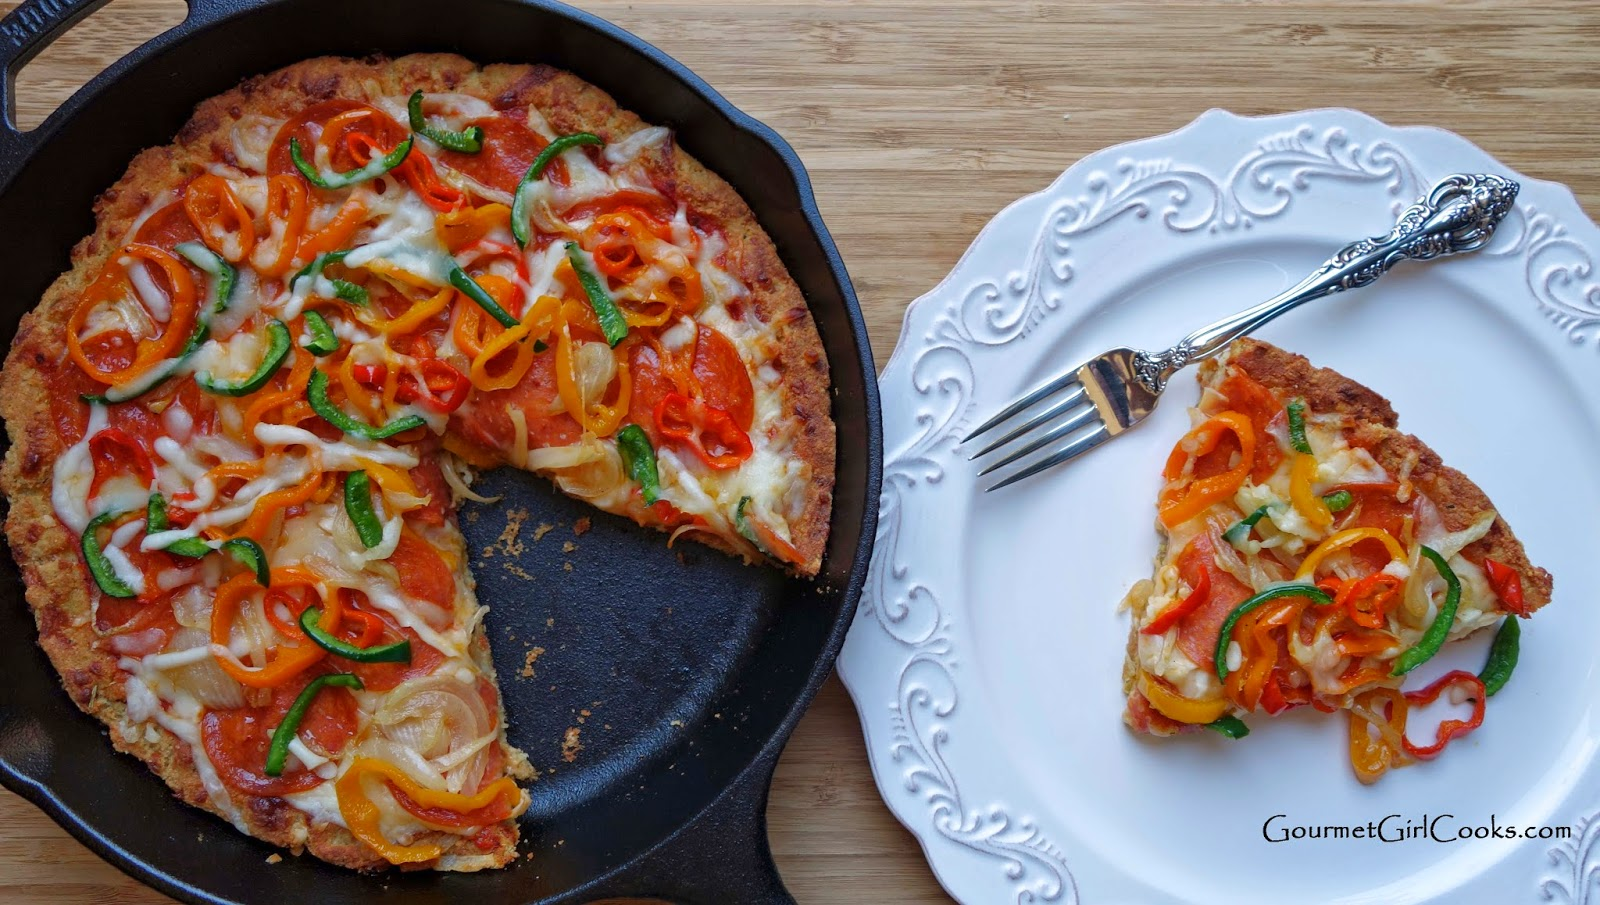 Gourmet Girl Cooks: Chicago Style Deep Dish Skillet Pizza ...